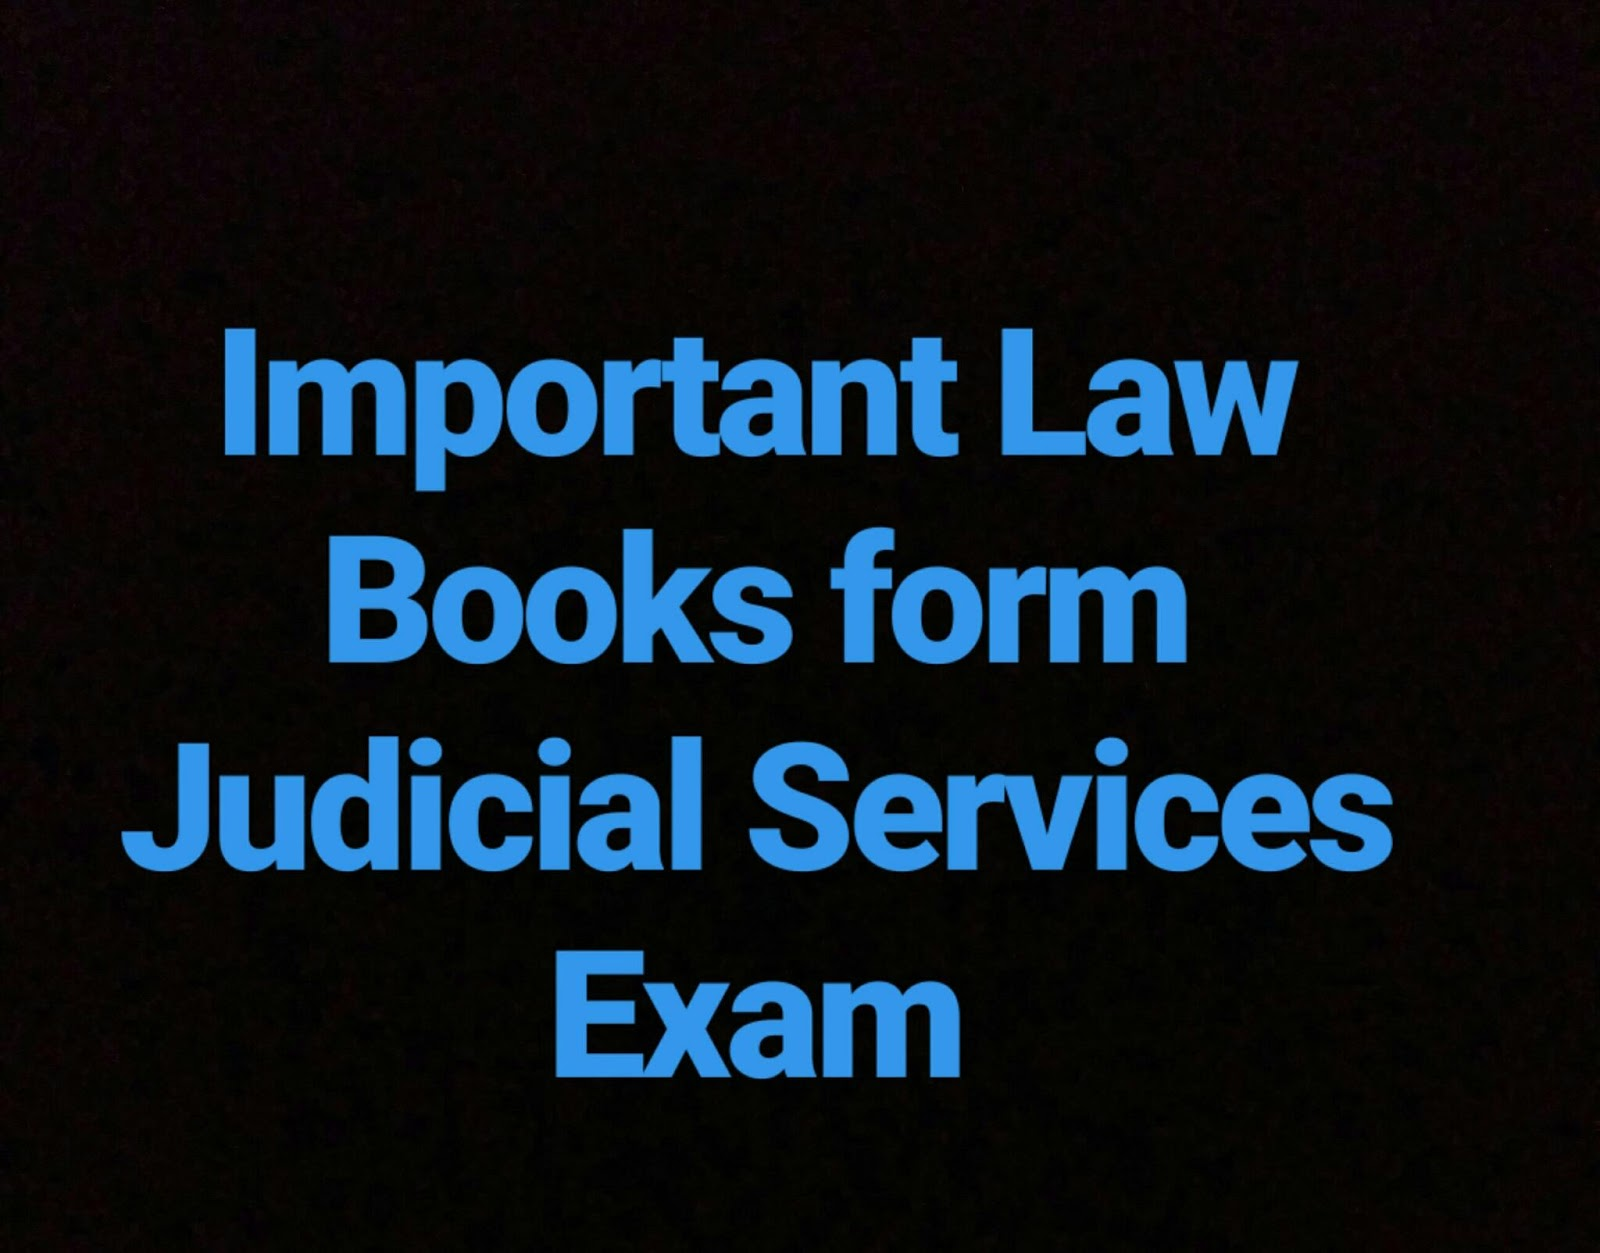 Important Books for Judicial Services exam or JMFC